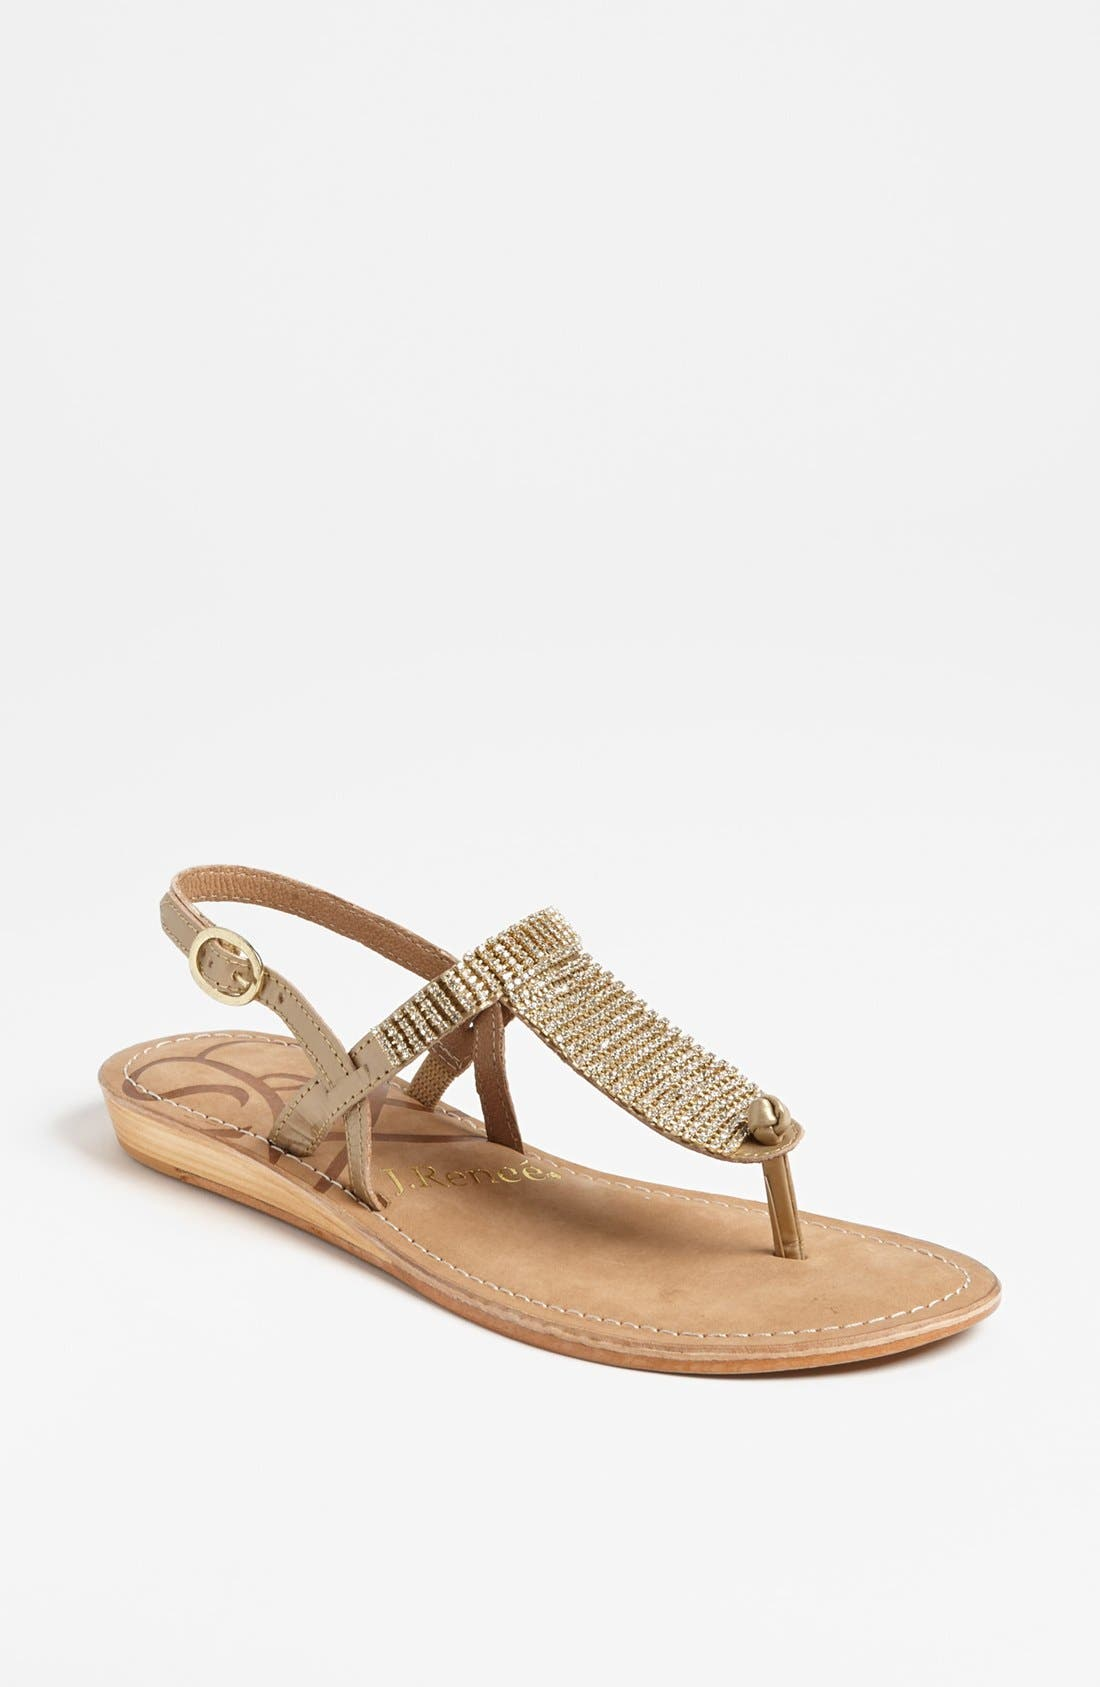 Alternate Image 1 Selected - J. Reneé 'Stella' Sandal